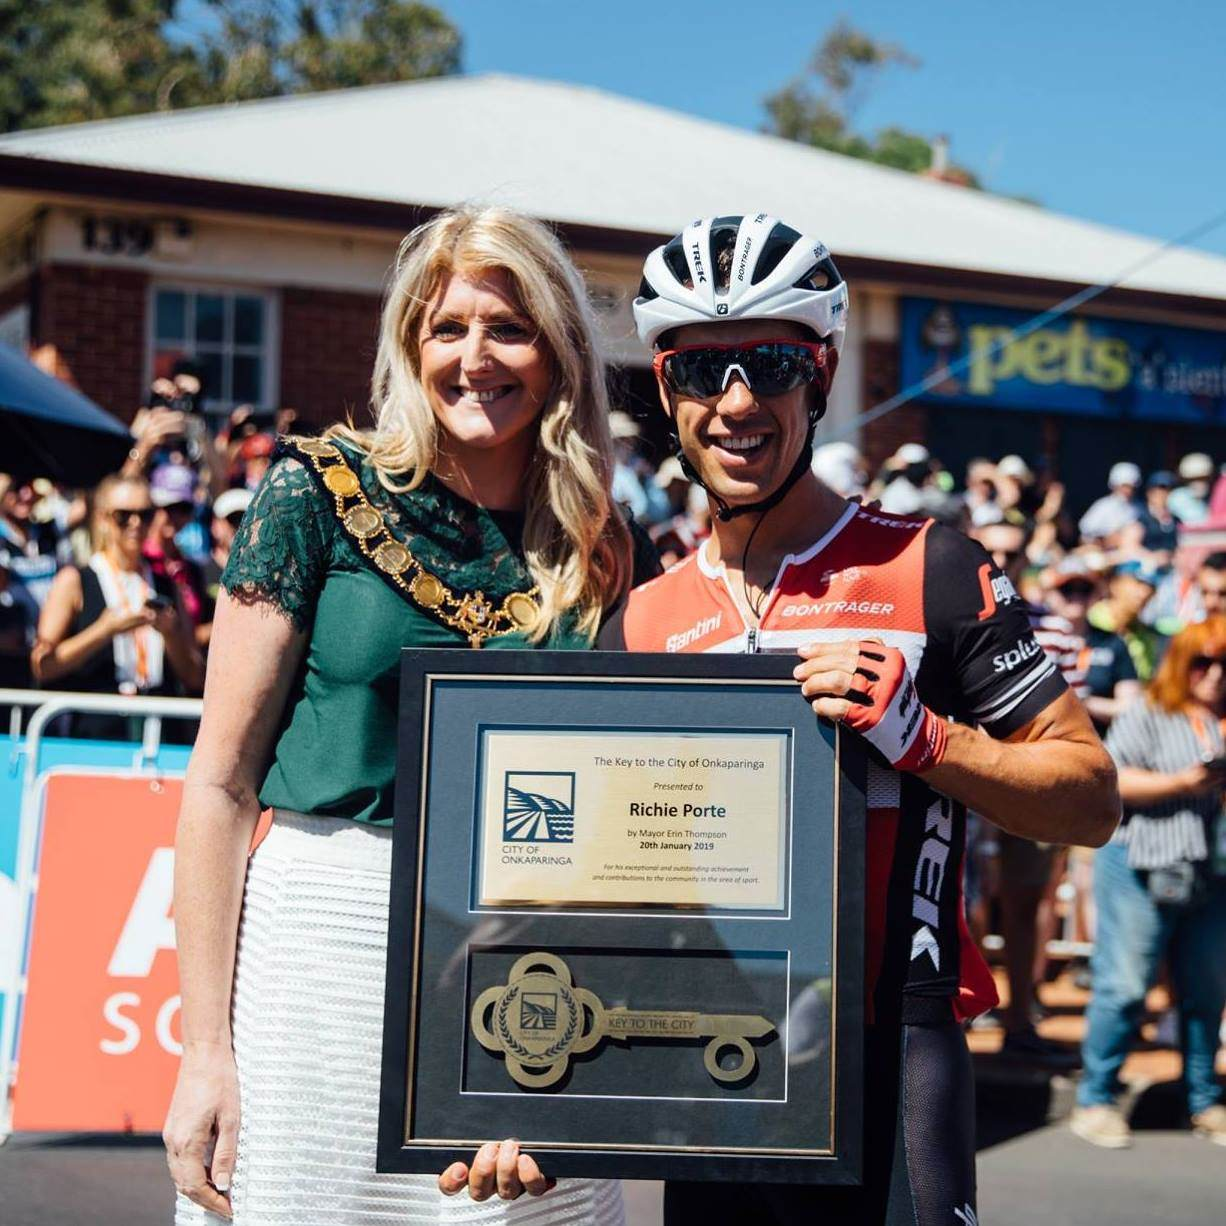 Mayor-Key-to-the-City-Richie-Porte-2019.jpg